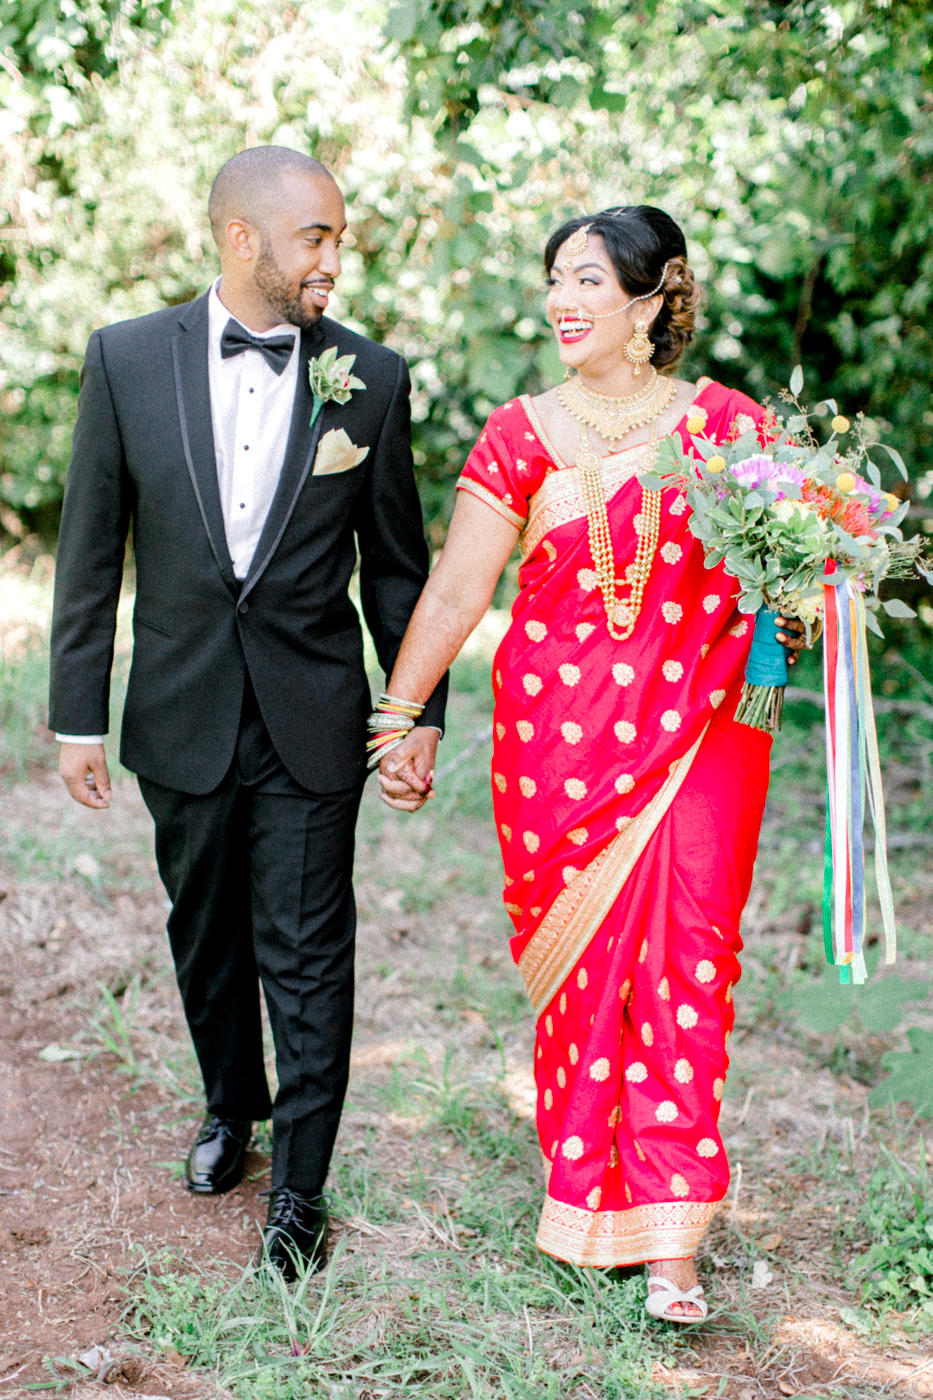 four corners photography atlanta wedding photographer indian wedding 550 trackside wedding atlanta indian wedding photographer (48 of 54).jpg